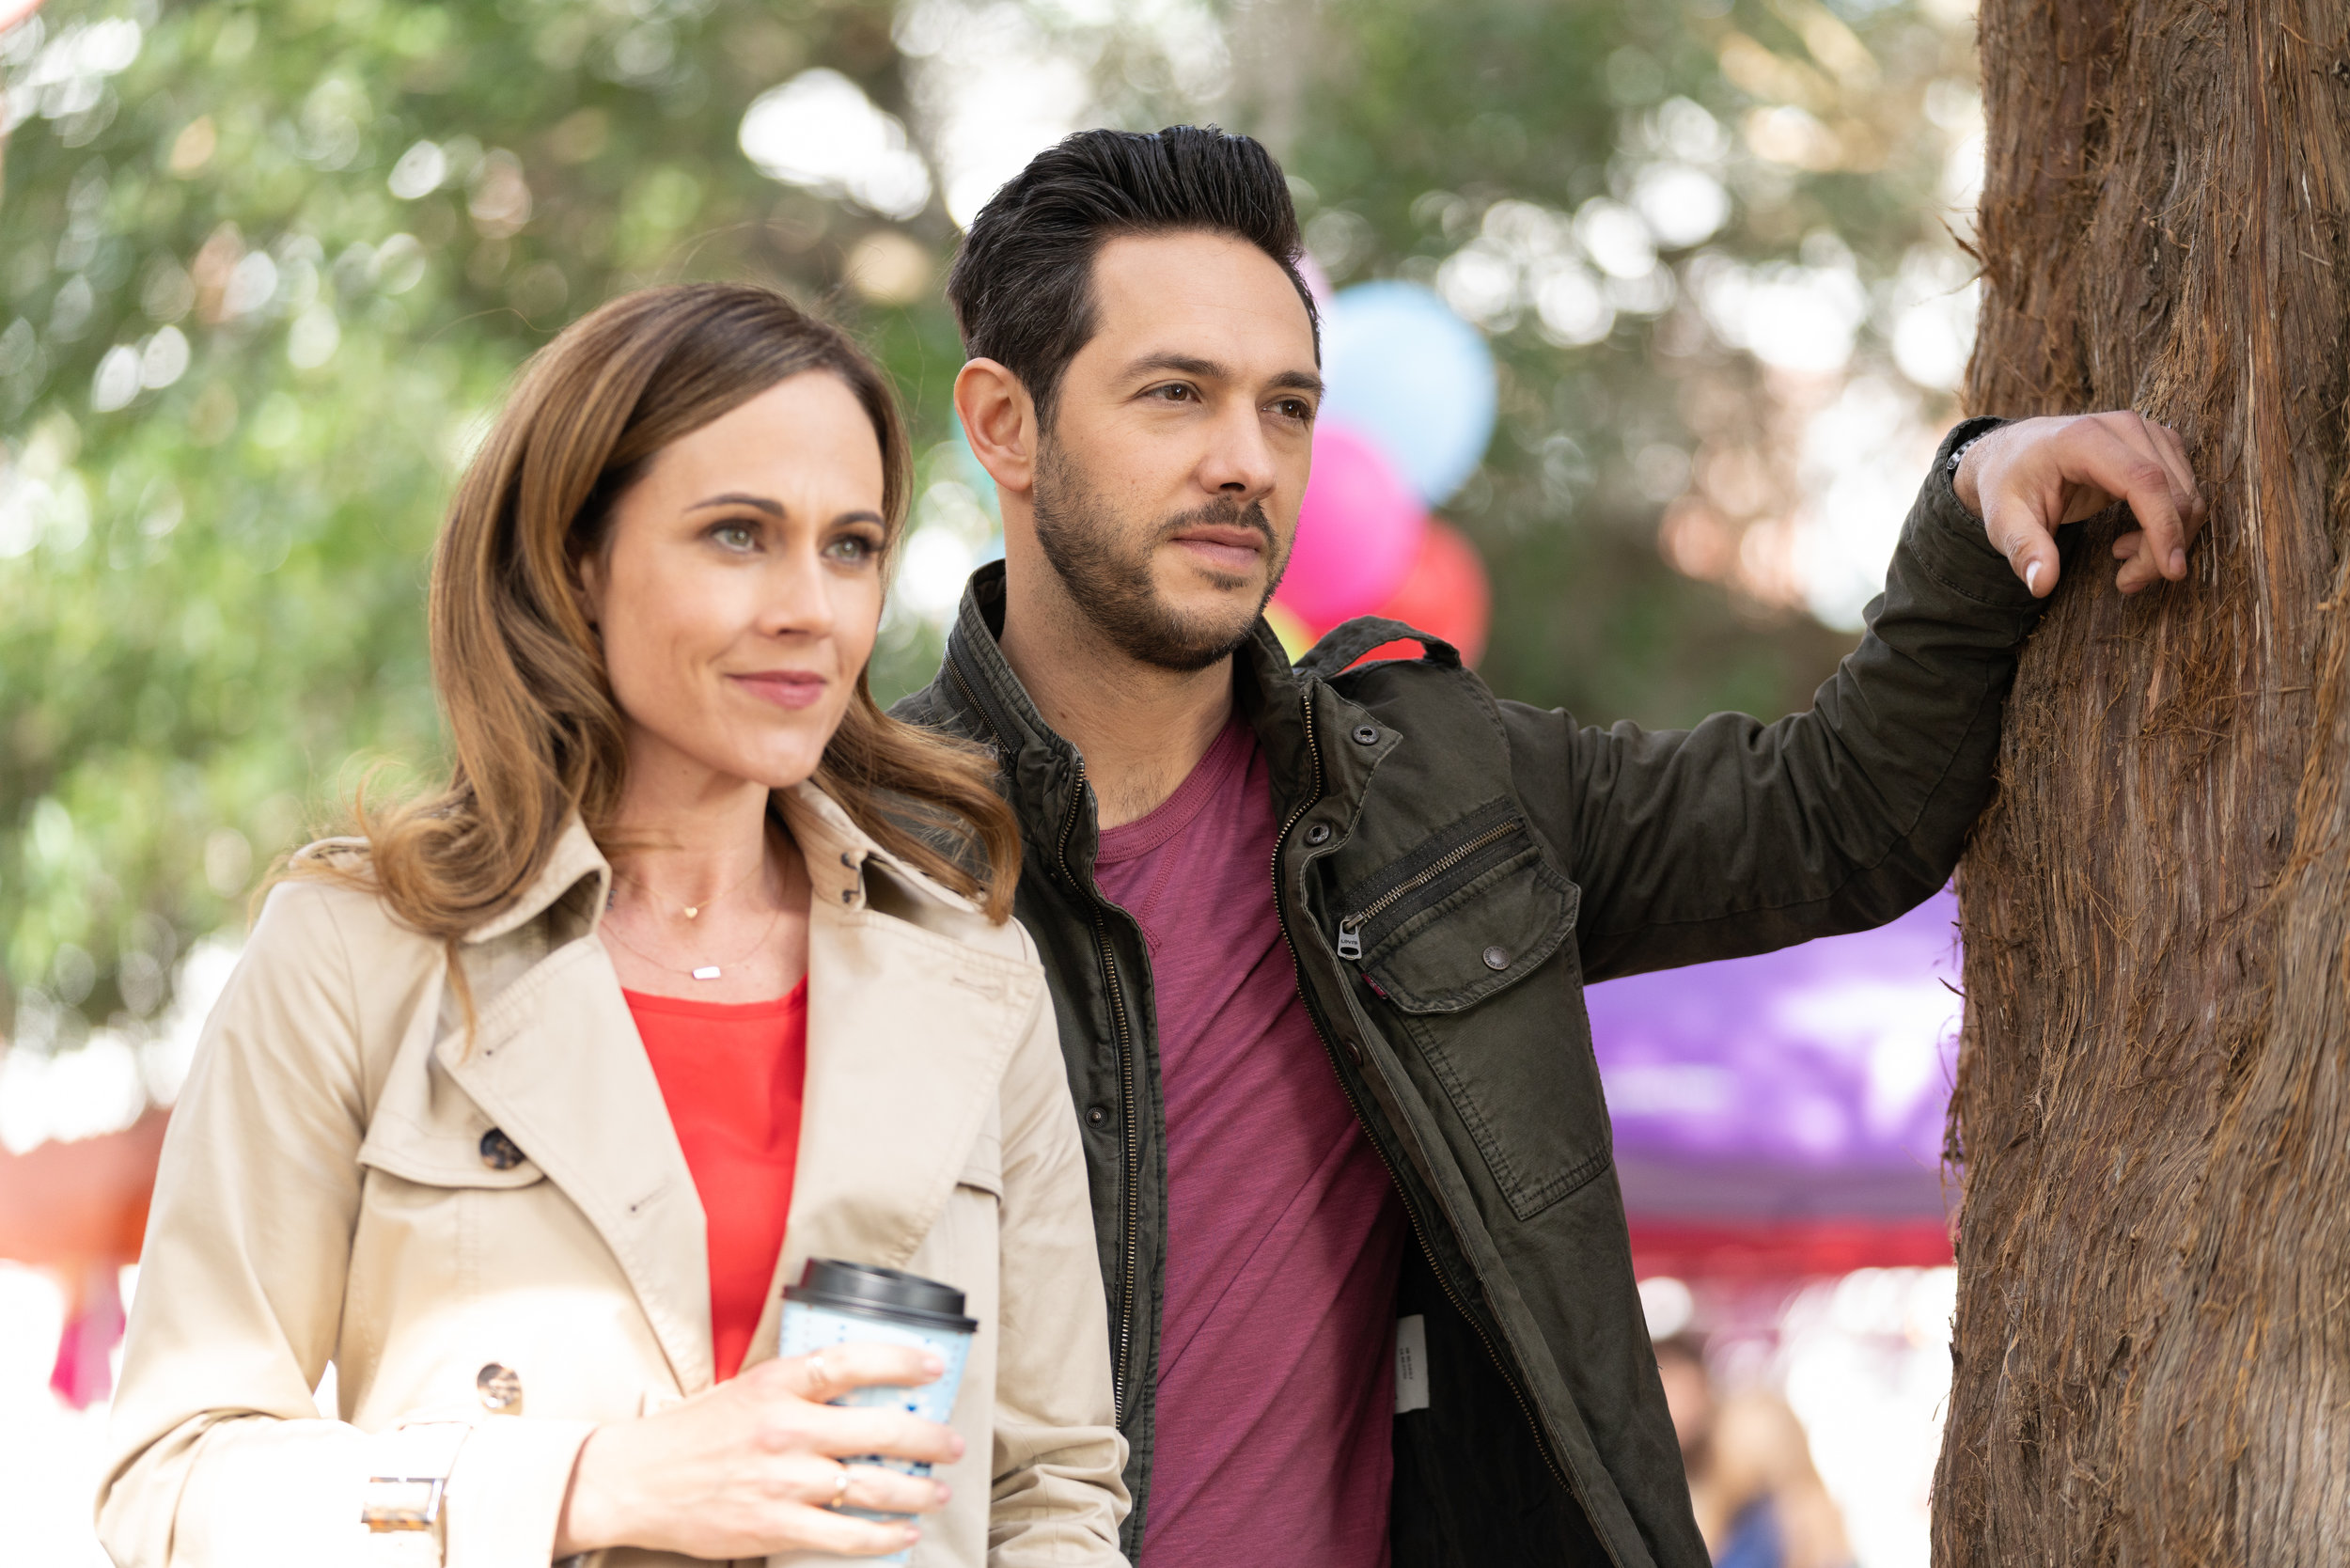 Nikki Deloach & Michael Rady - Love to the Rescue (2019)